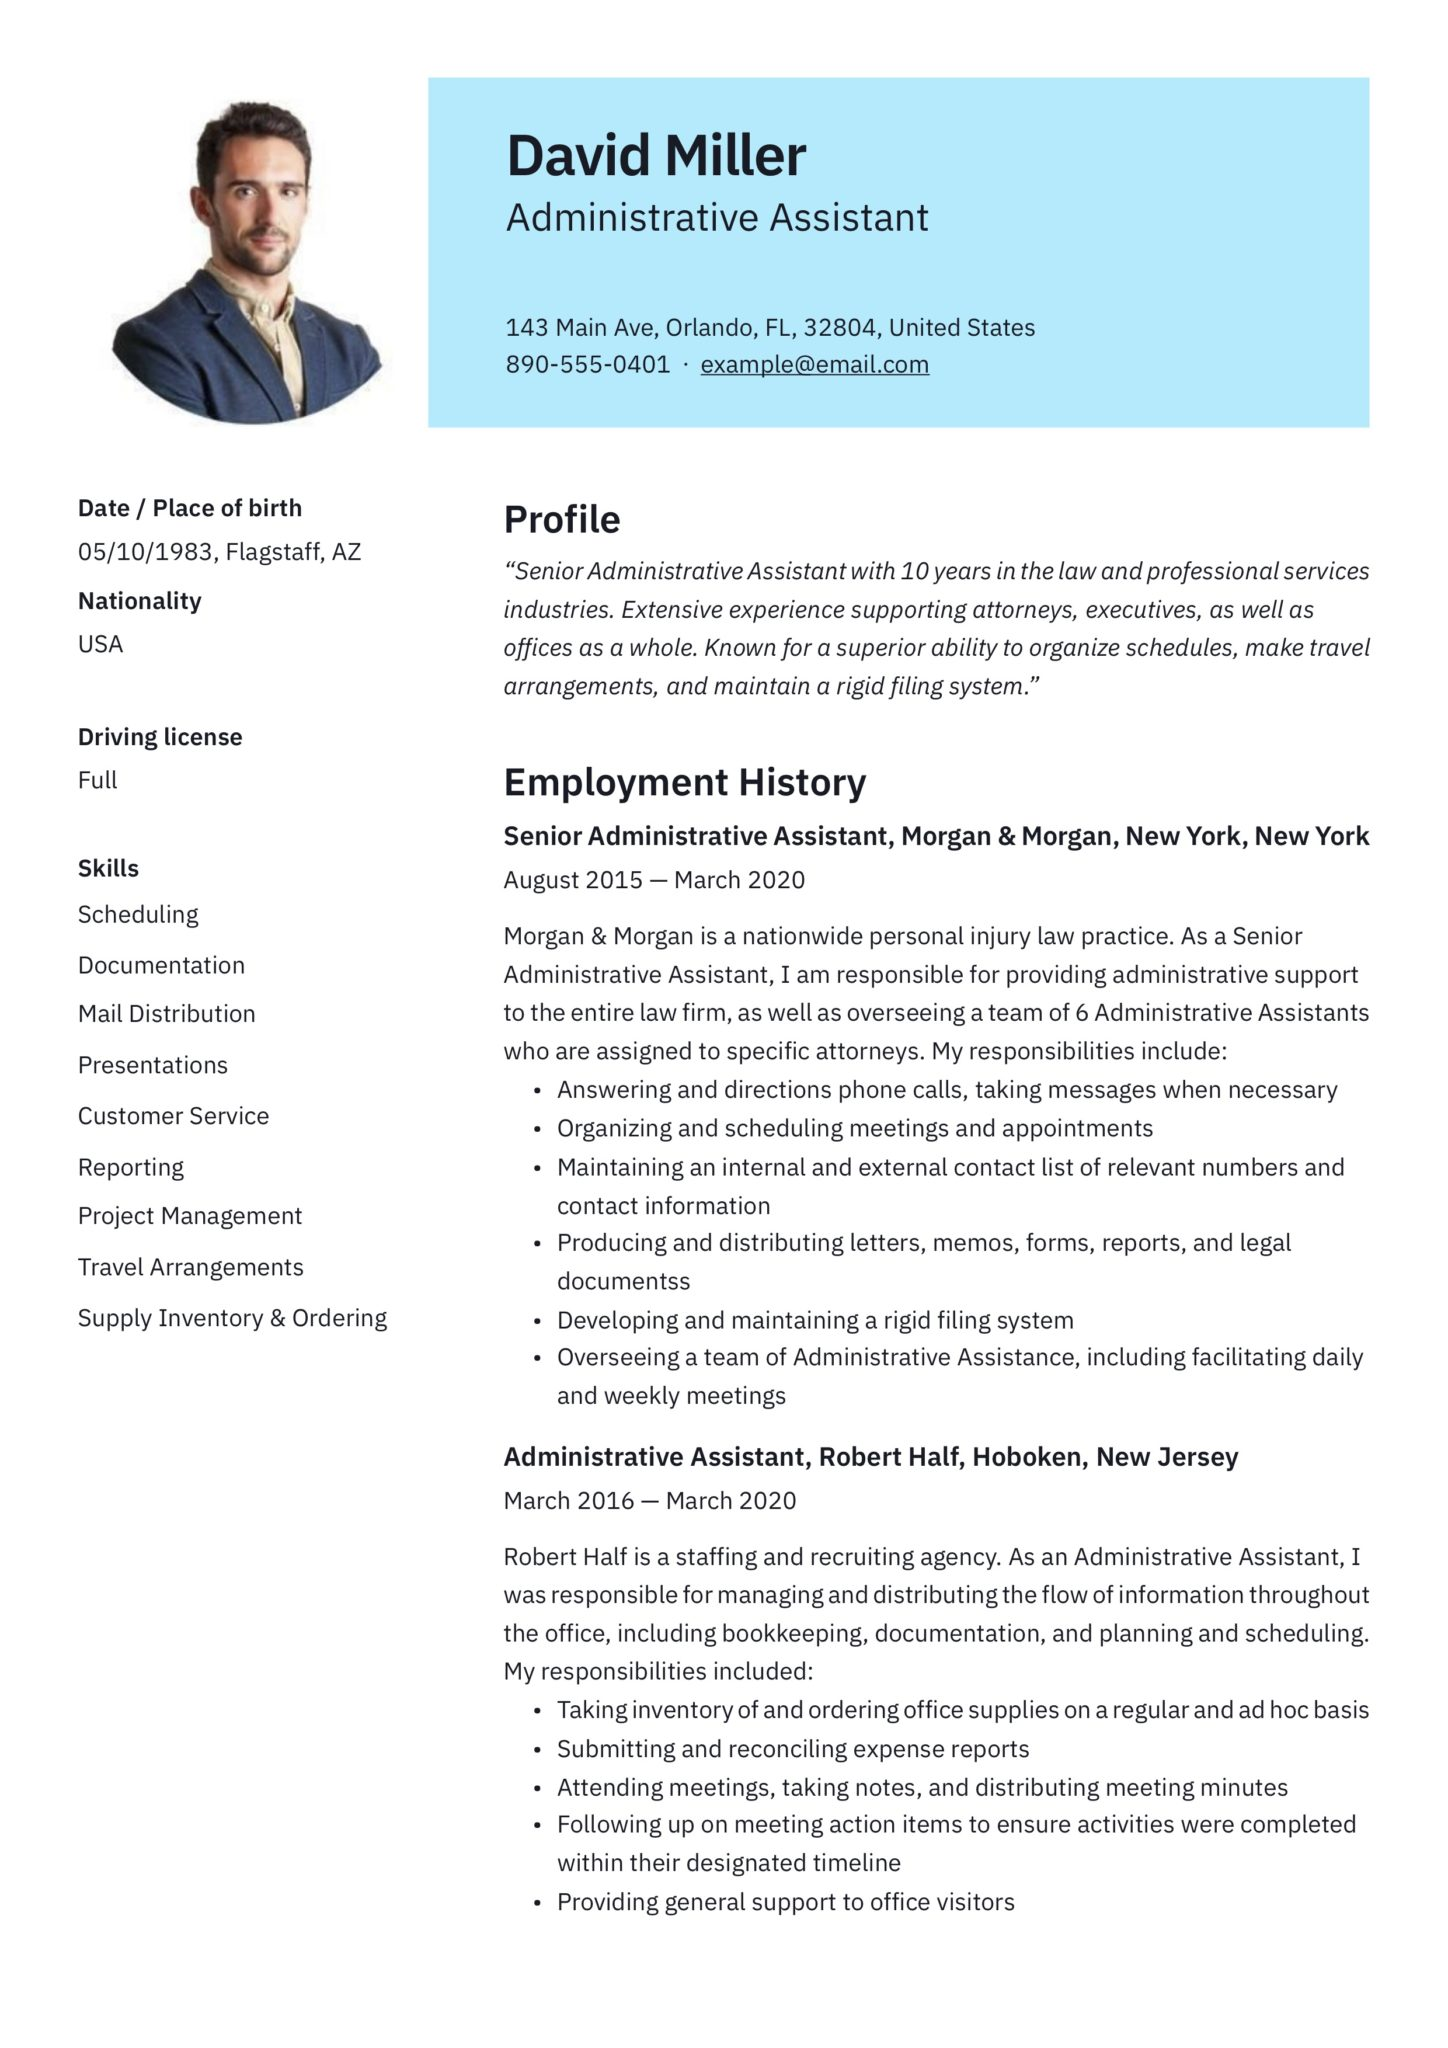 free administrative assistant resumes writing guide pdf resume samples scaled data Resume Administrative Assistant Resume Samples 2020